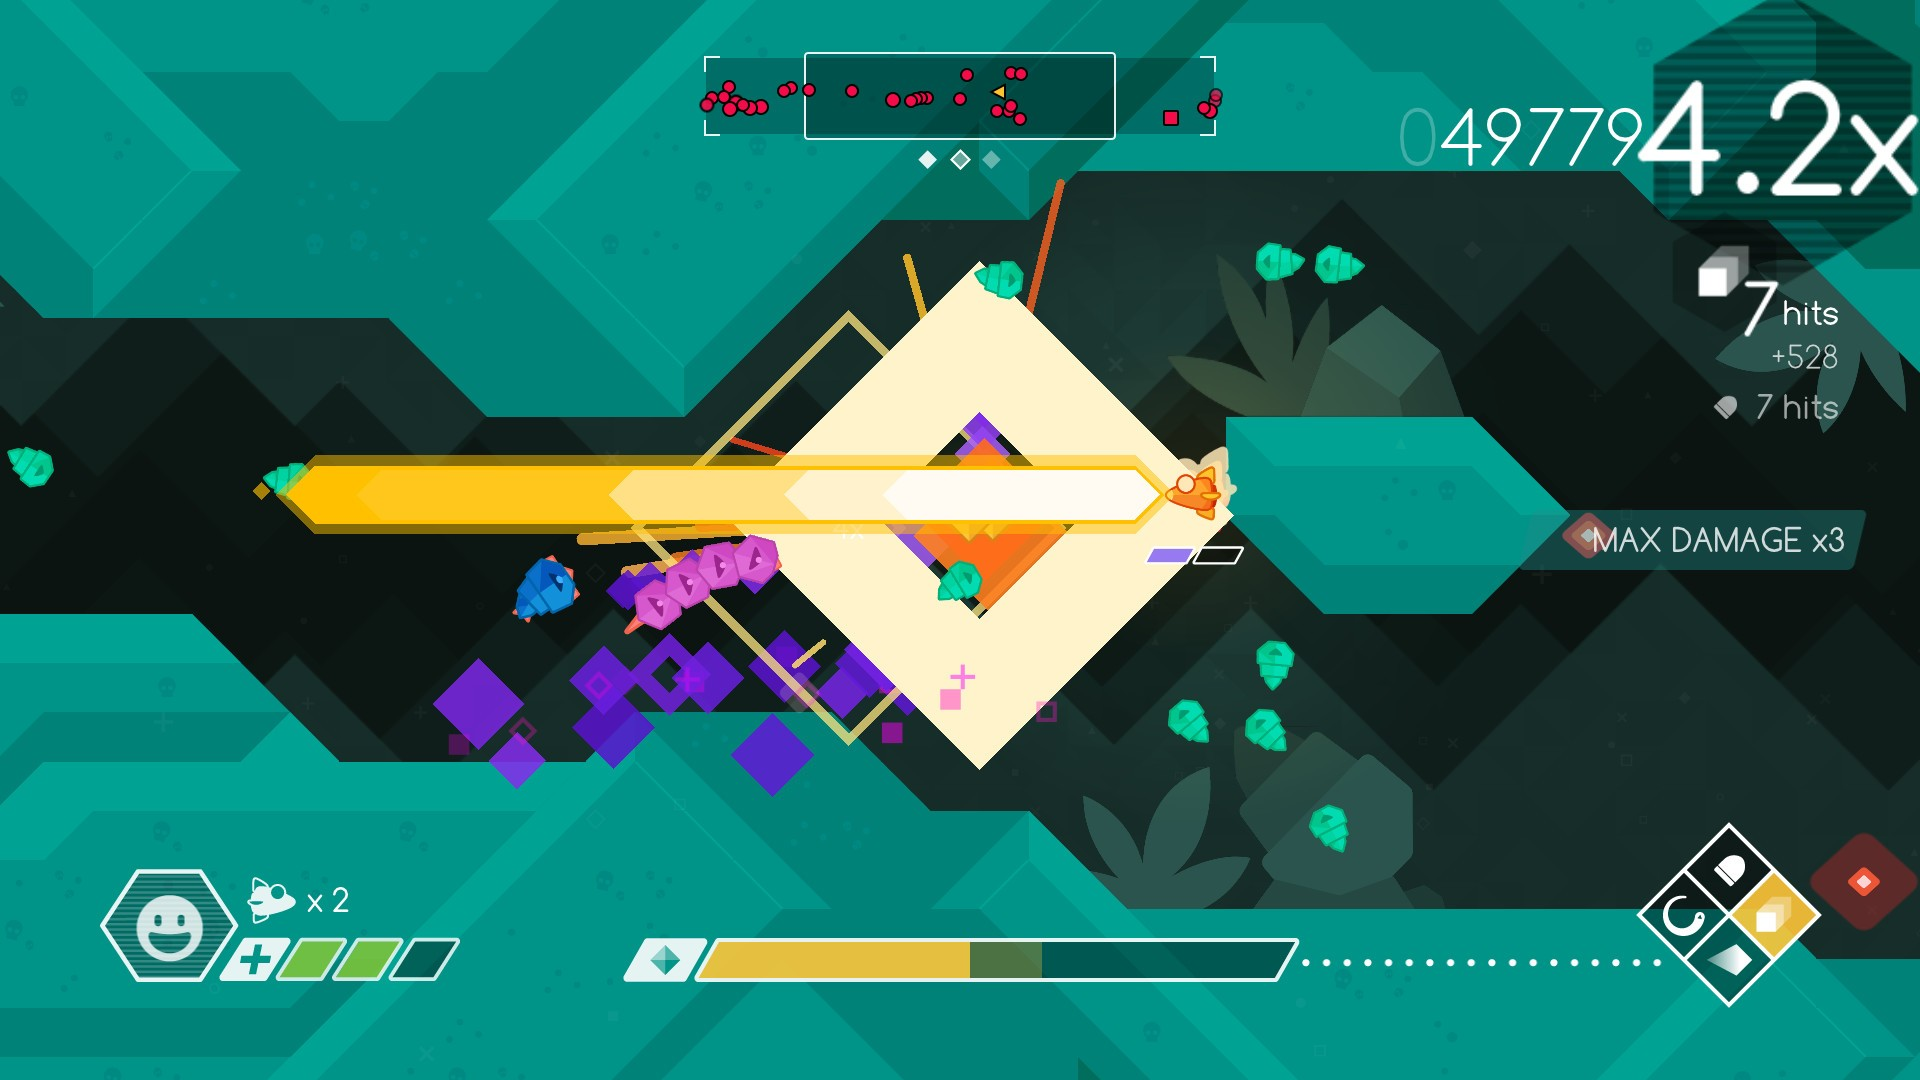 Graceful Explosion Machine_body_3